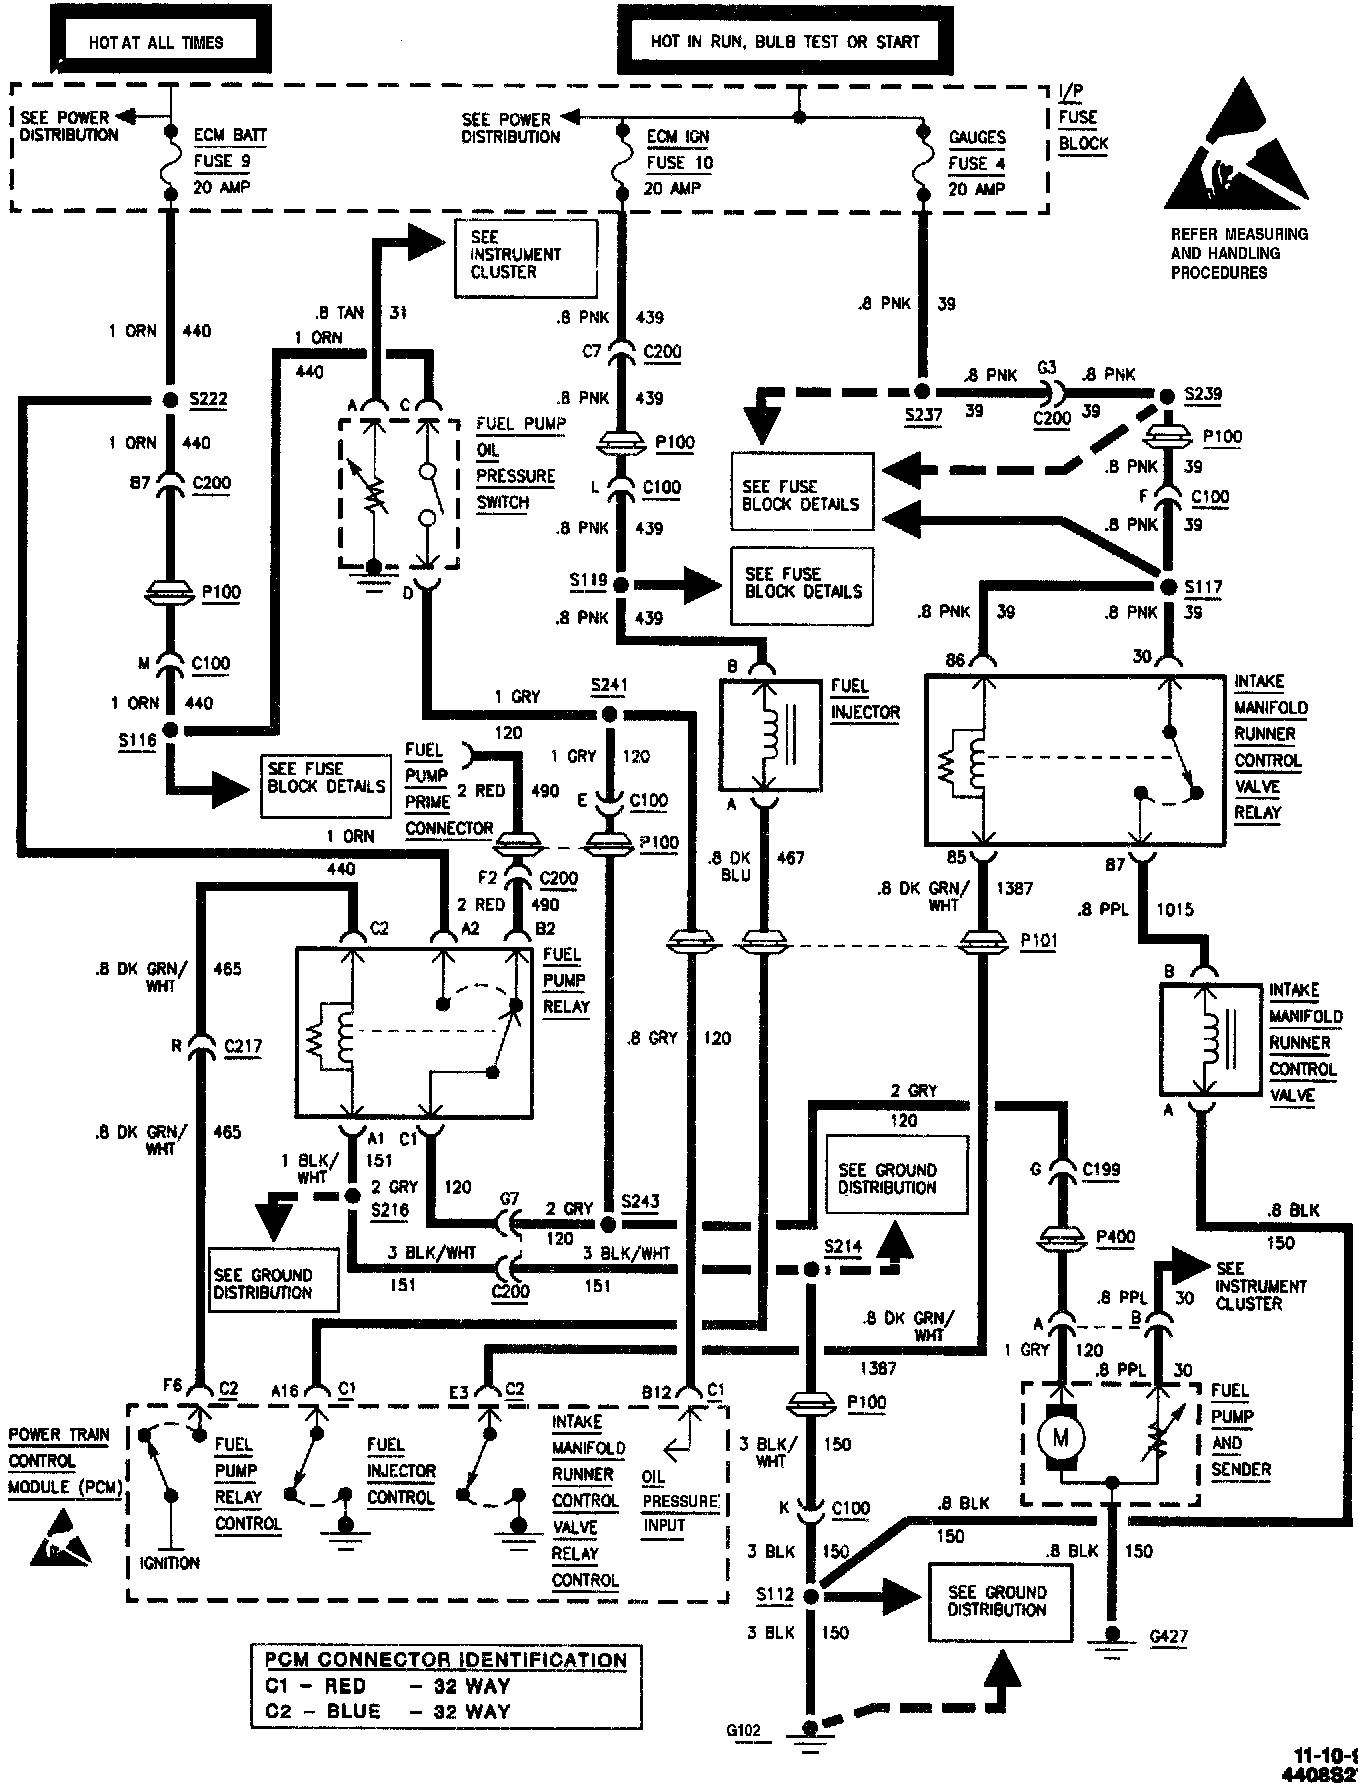 2000 chevy blazer engine diagram c3 wiring s10 fuel pump database 1996 schematic 2001